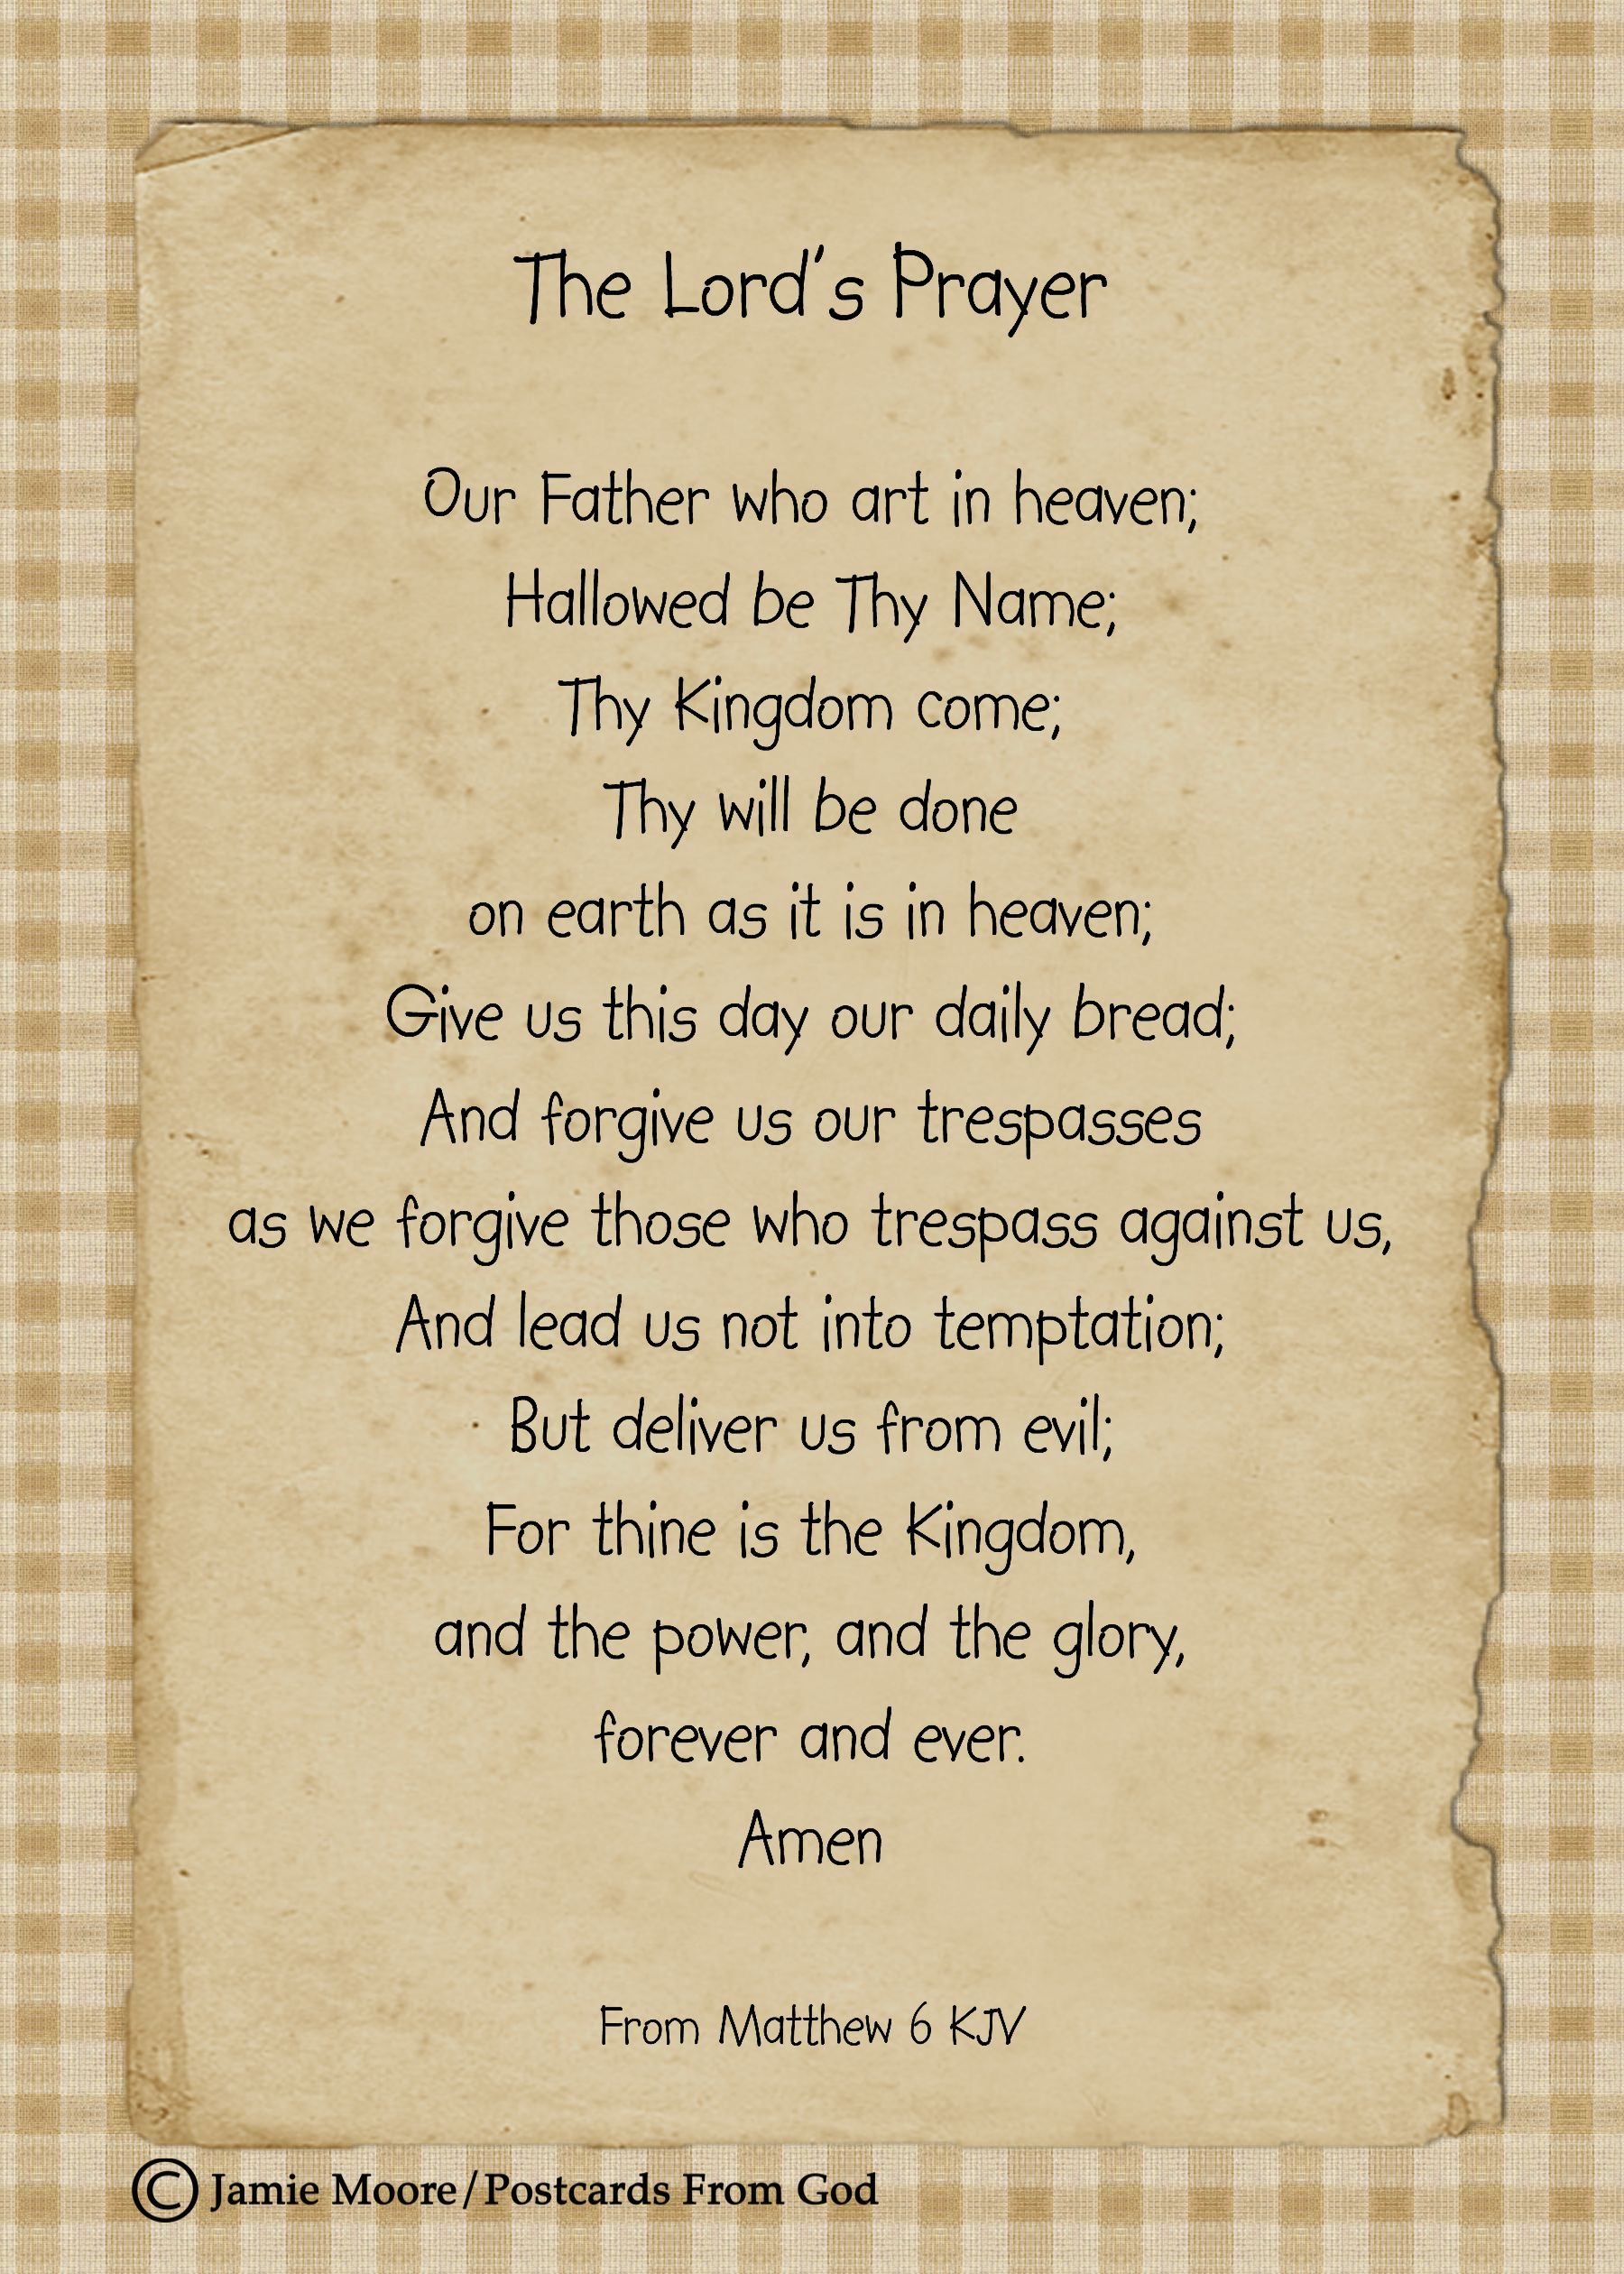 Our Father who art in heaven, hallowed be Thy Name.  www.facebook.com/PostcardsFromGod